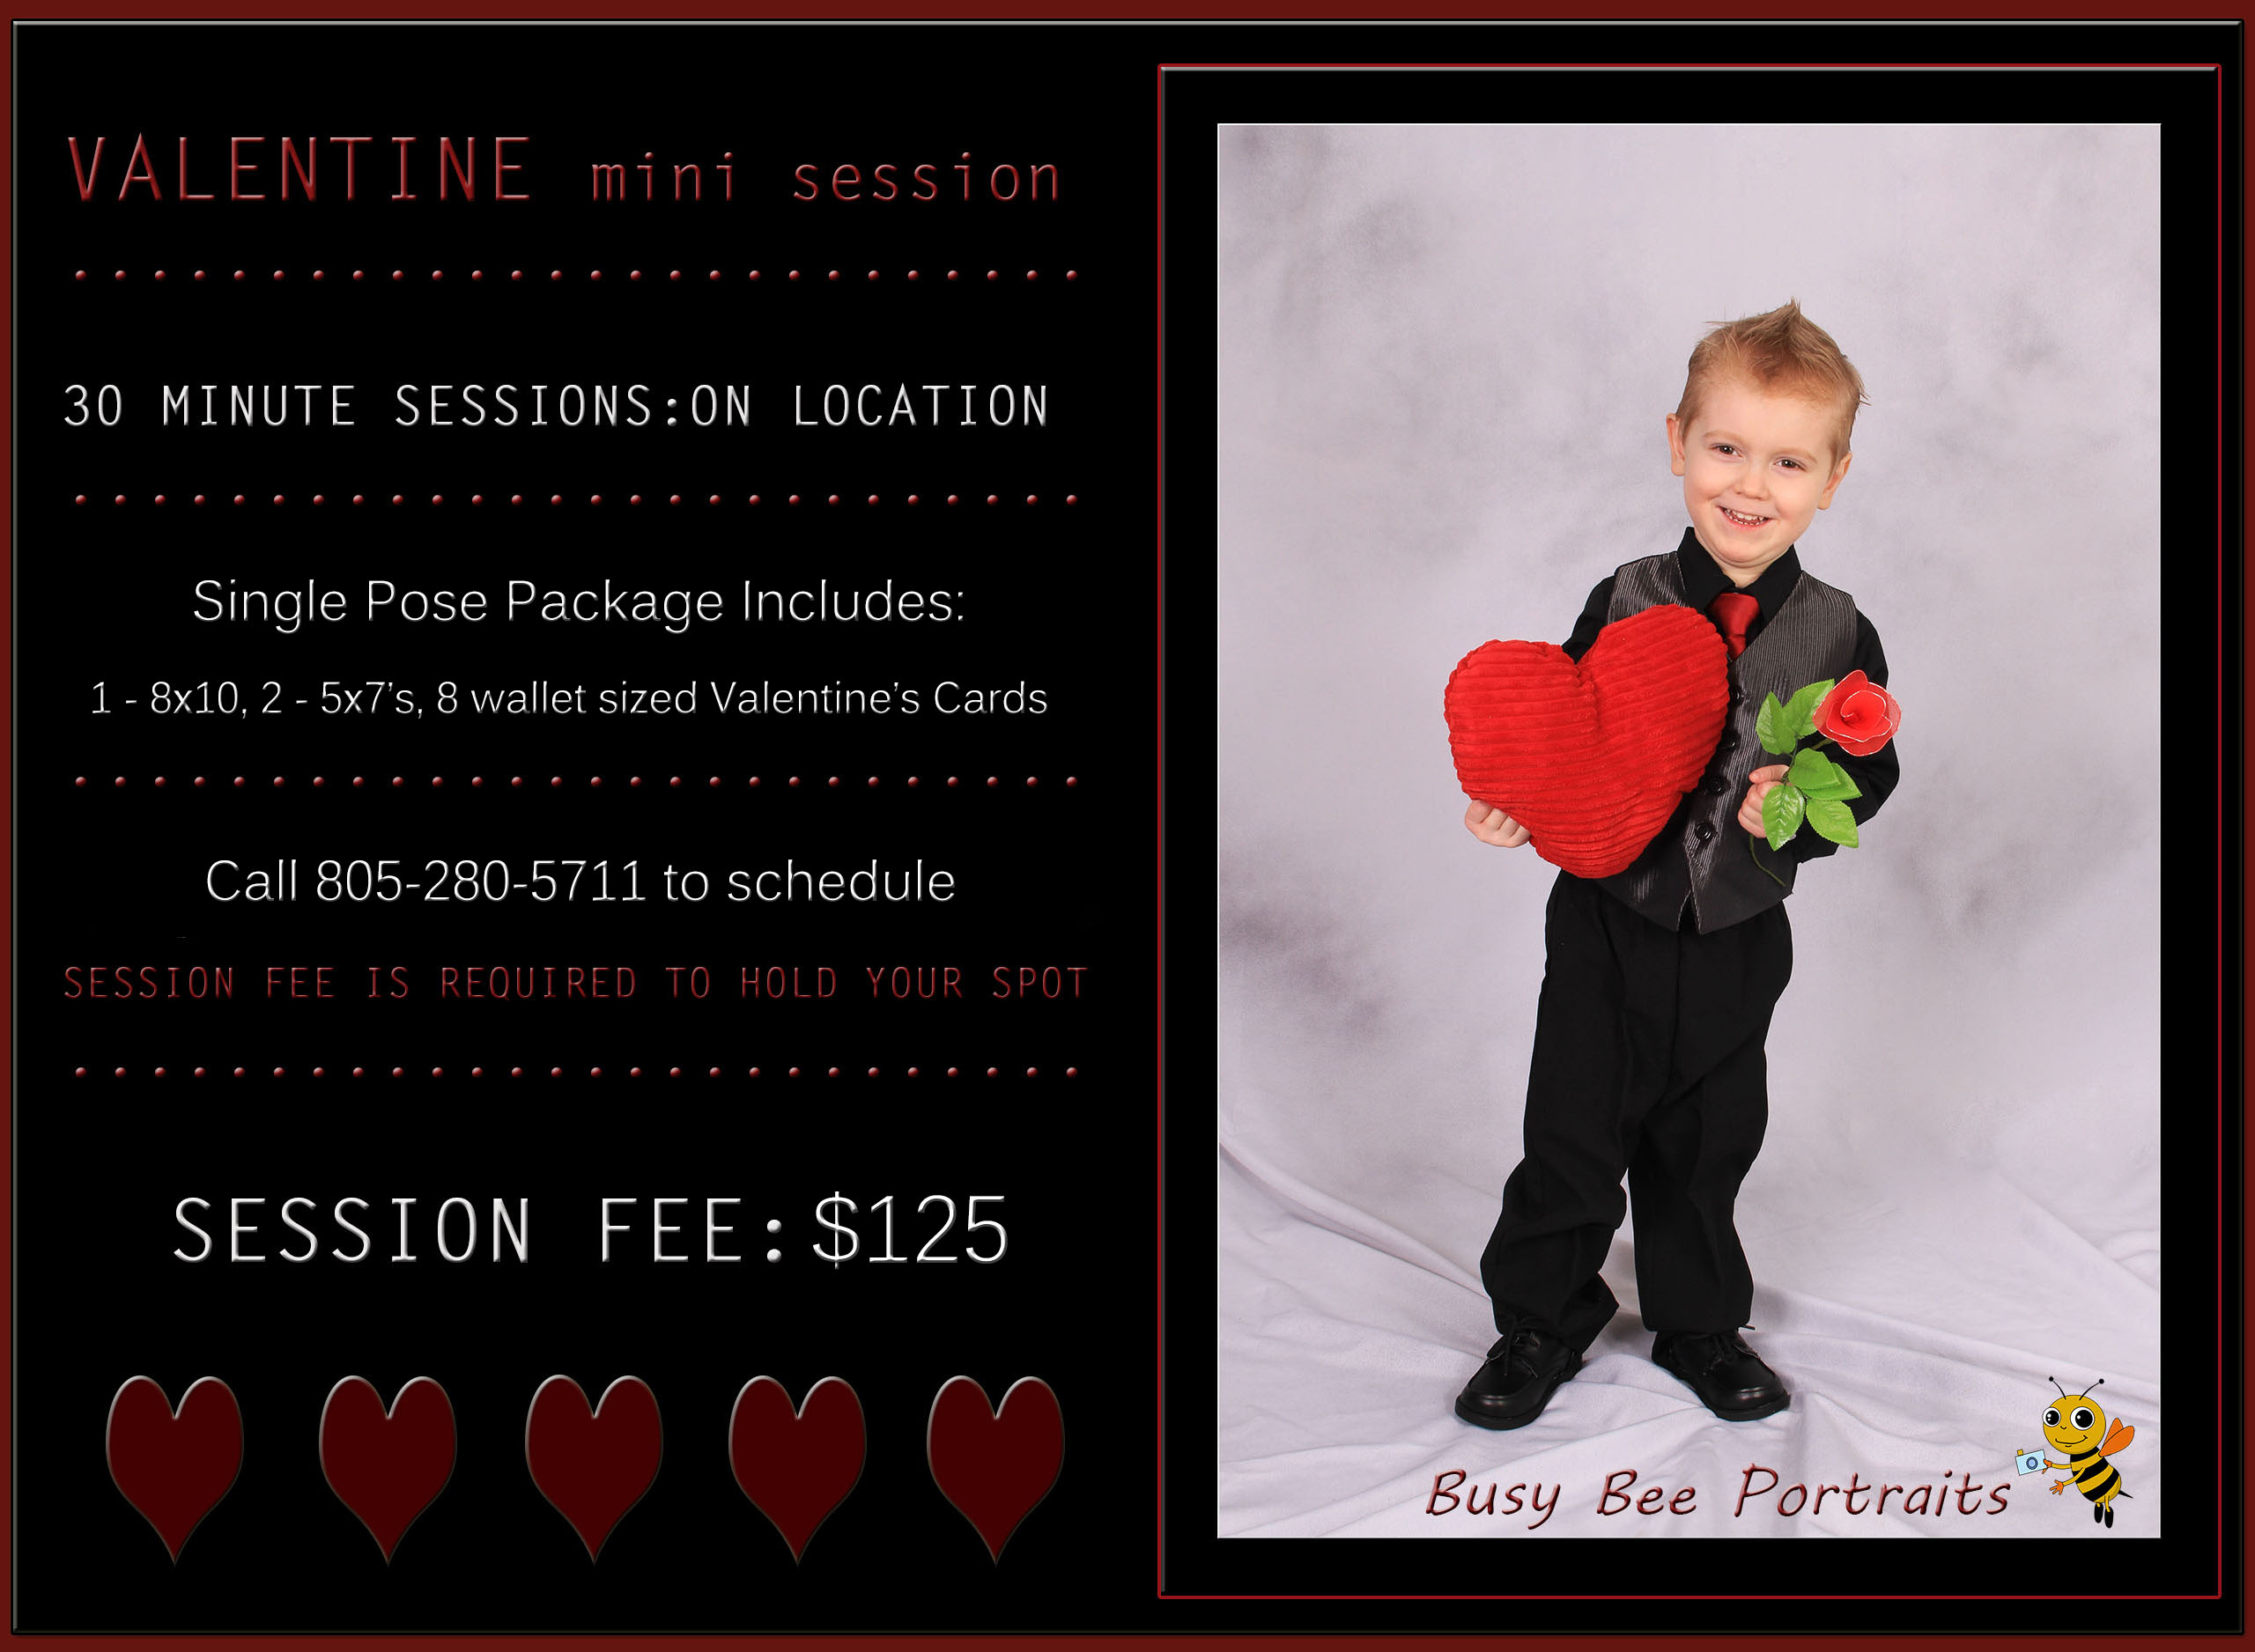 Valentine's Day Mini Session by Busy Bee Portraits, Santa Barbara Children's Photographer, Family photographer in Santa Barbara